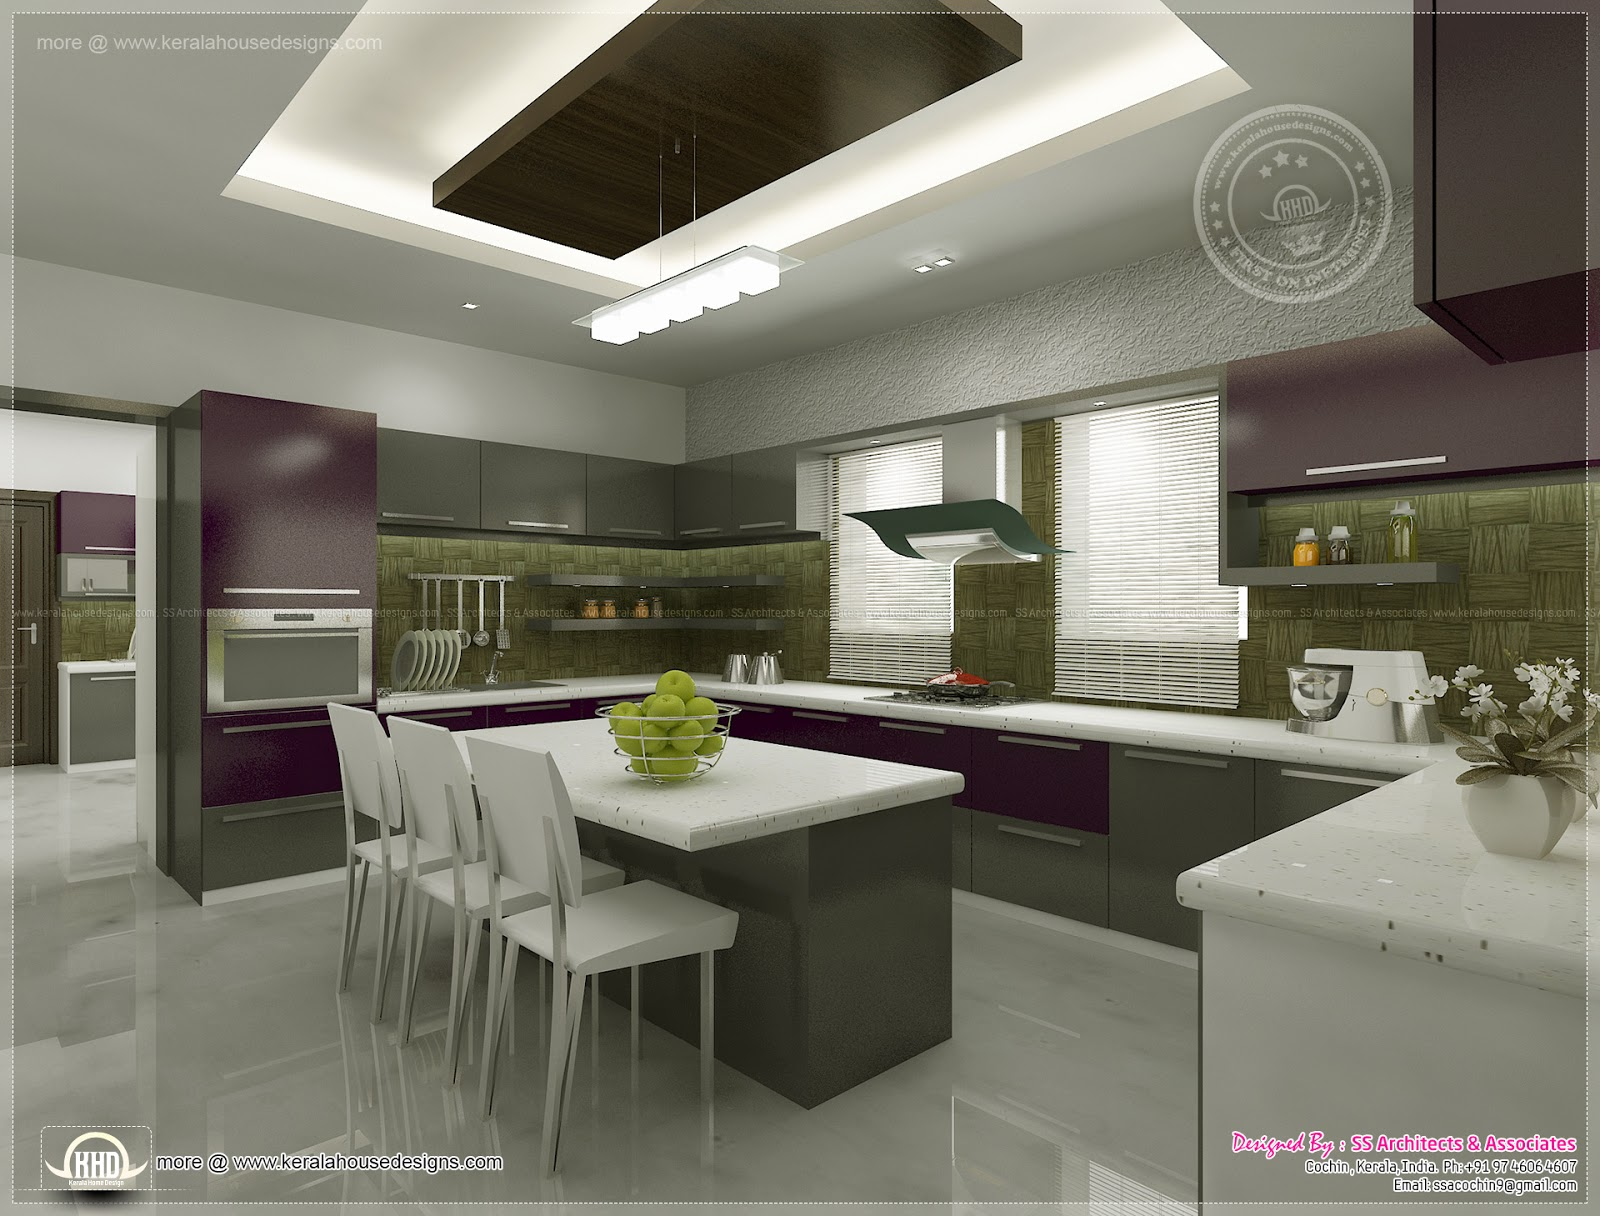 Kitchen interior views by ss architects cochin kerala for Interior designs photos